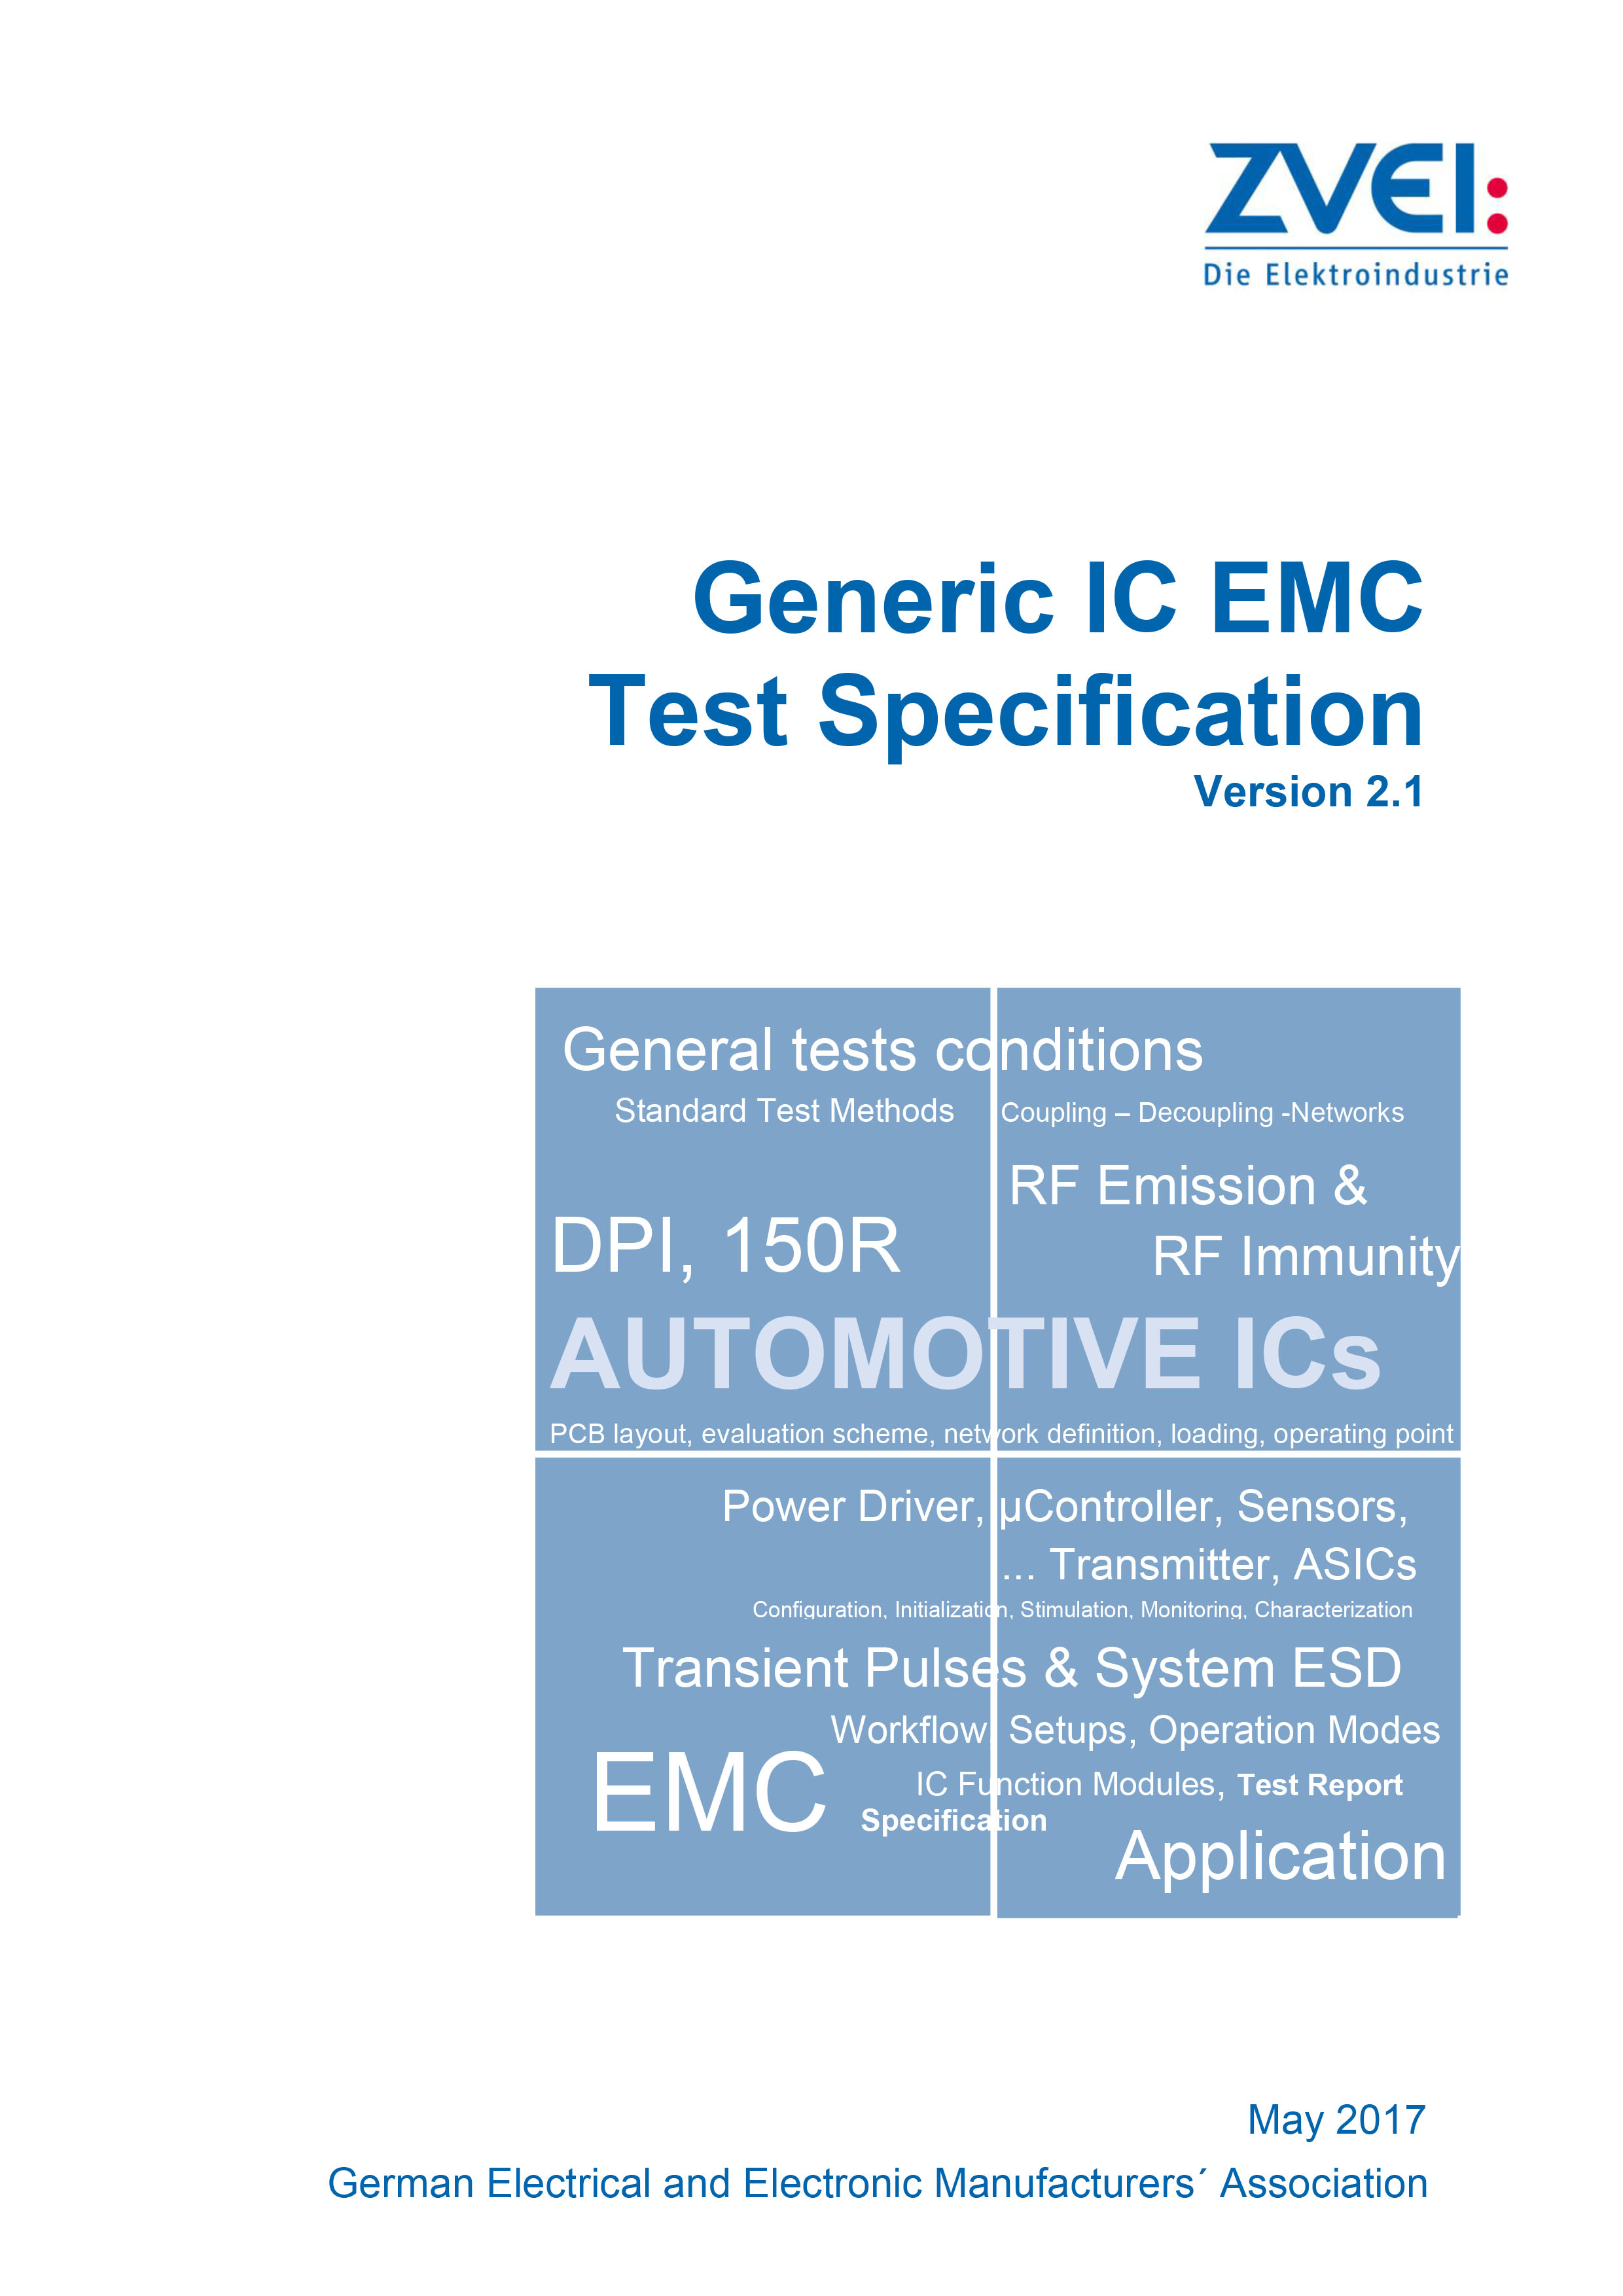 Guideline Generic IC EMC Test Specification Version 2.1 - zvei.org